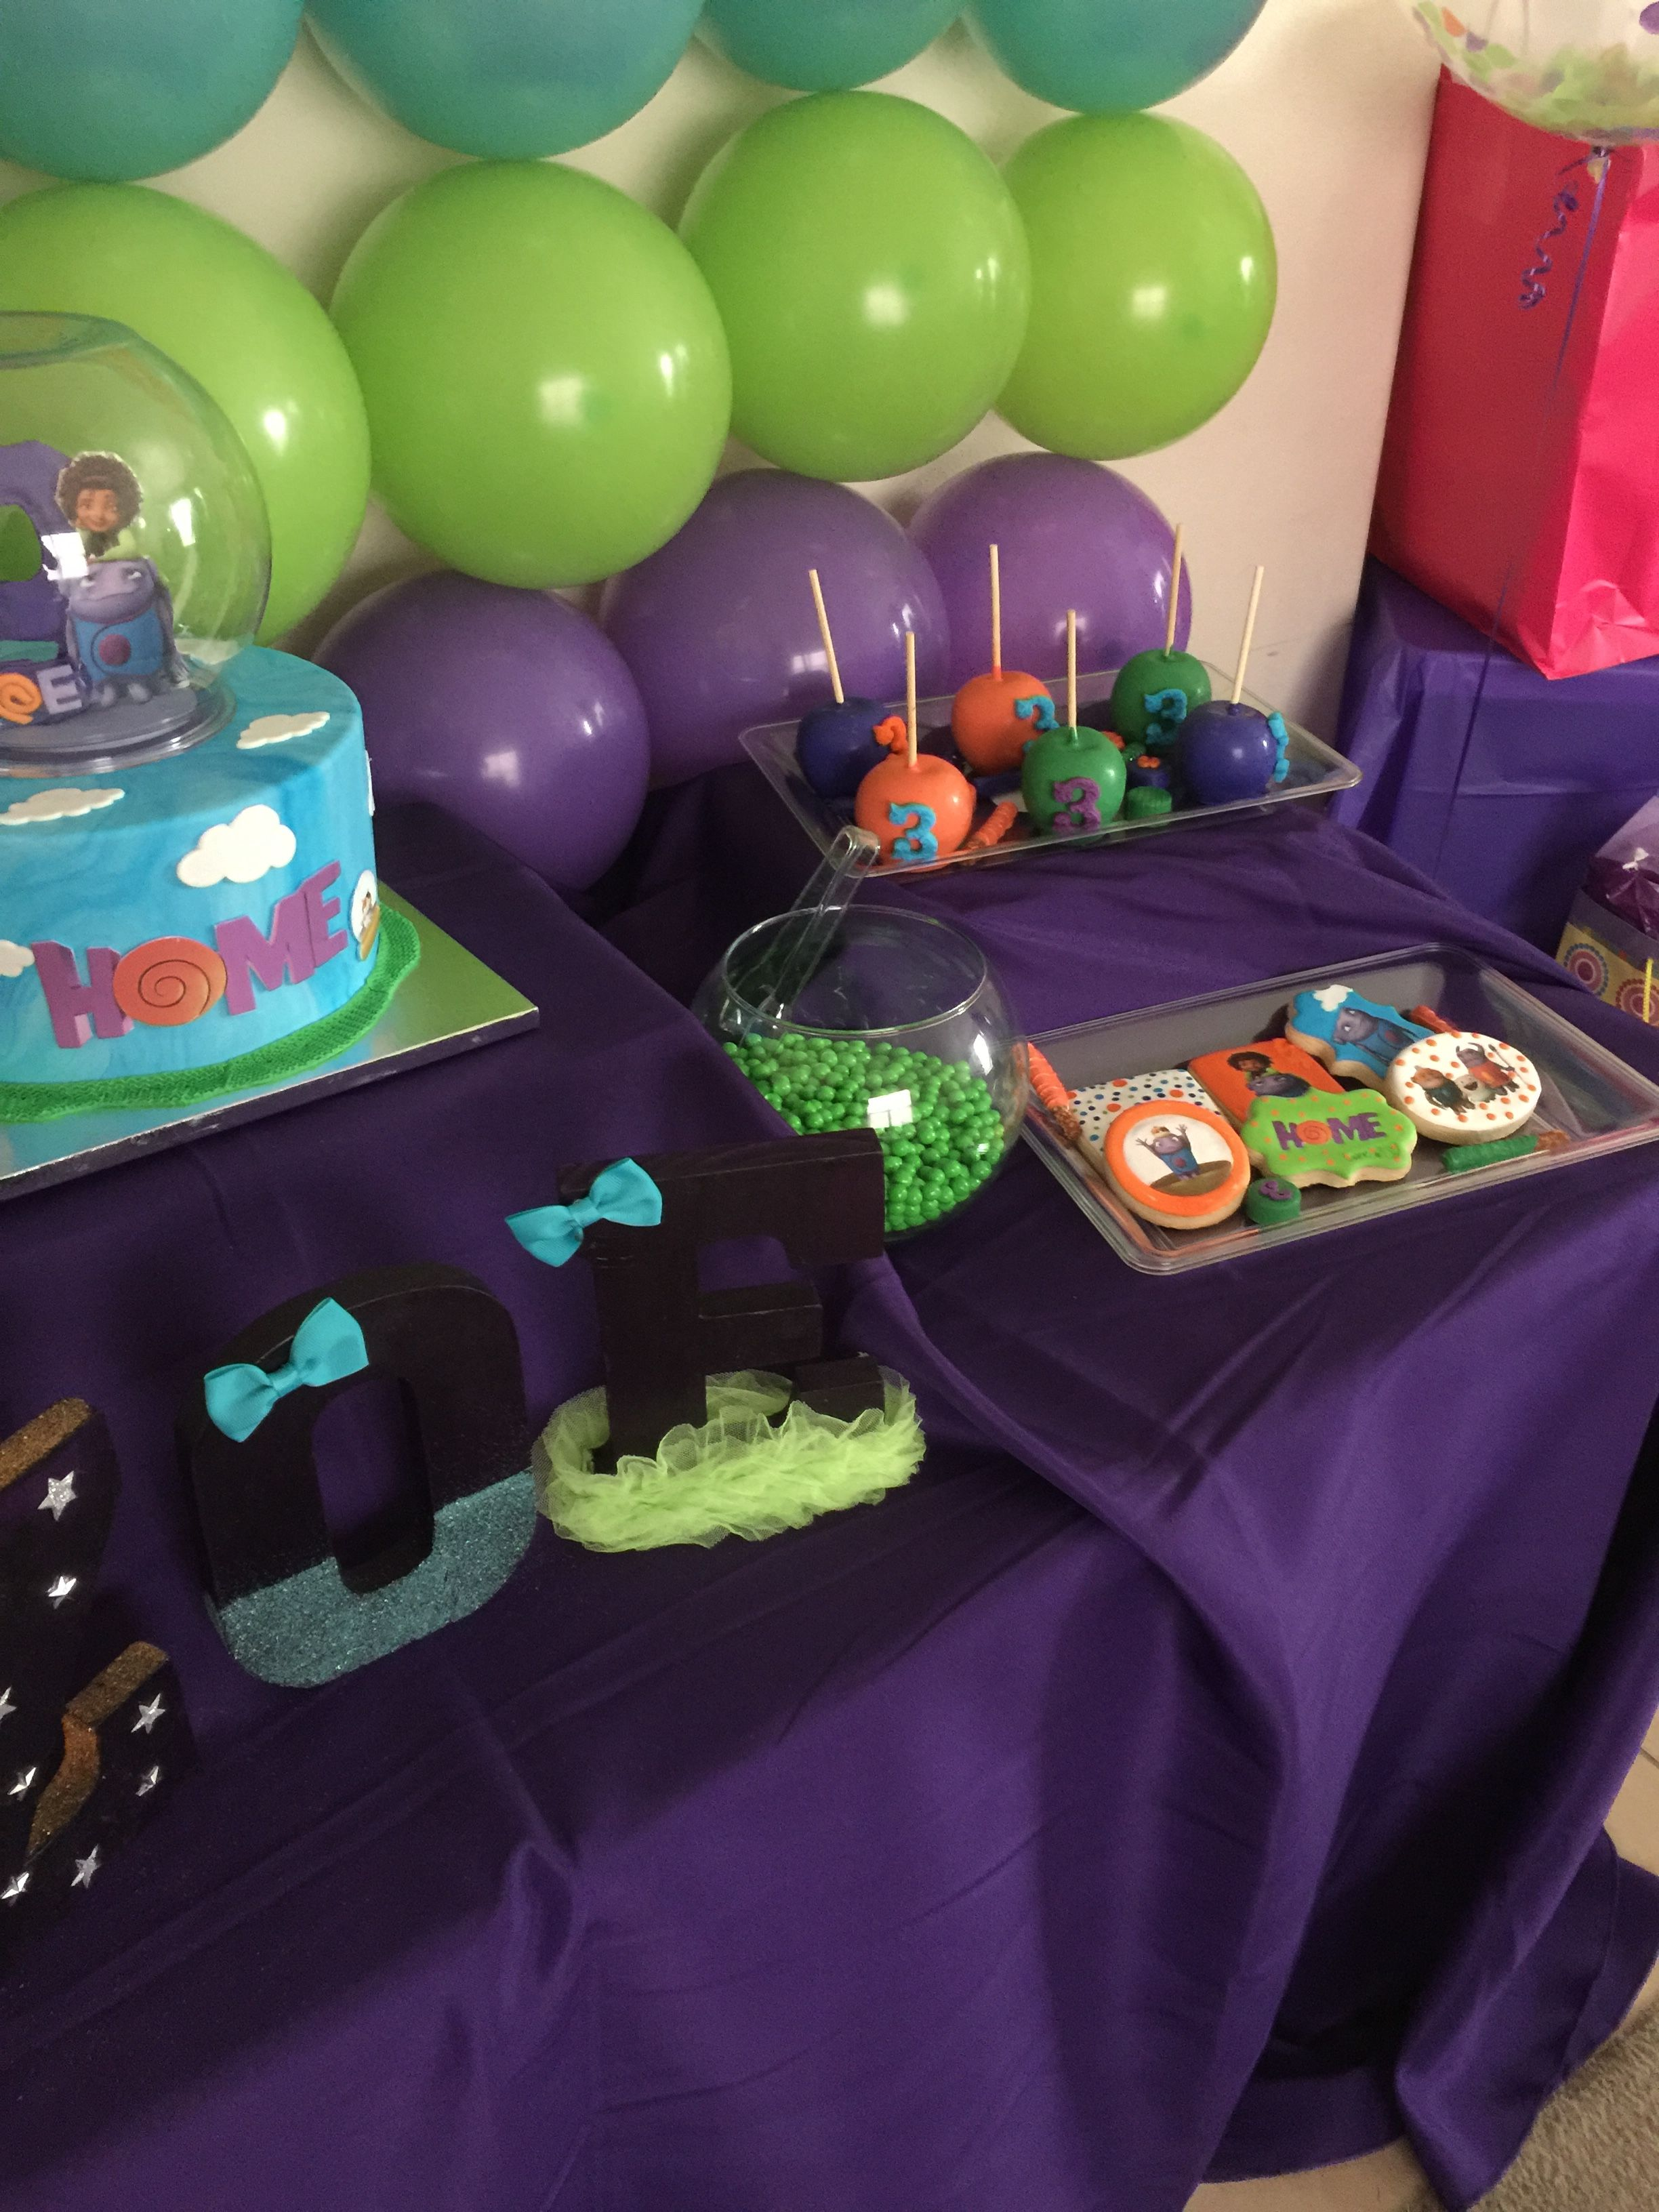 Dreamworks Home Boov Party Dessert Table Dreamworks Home Party